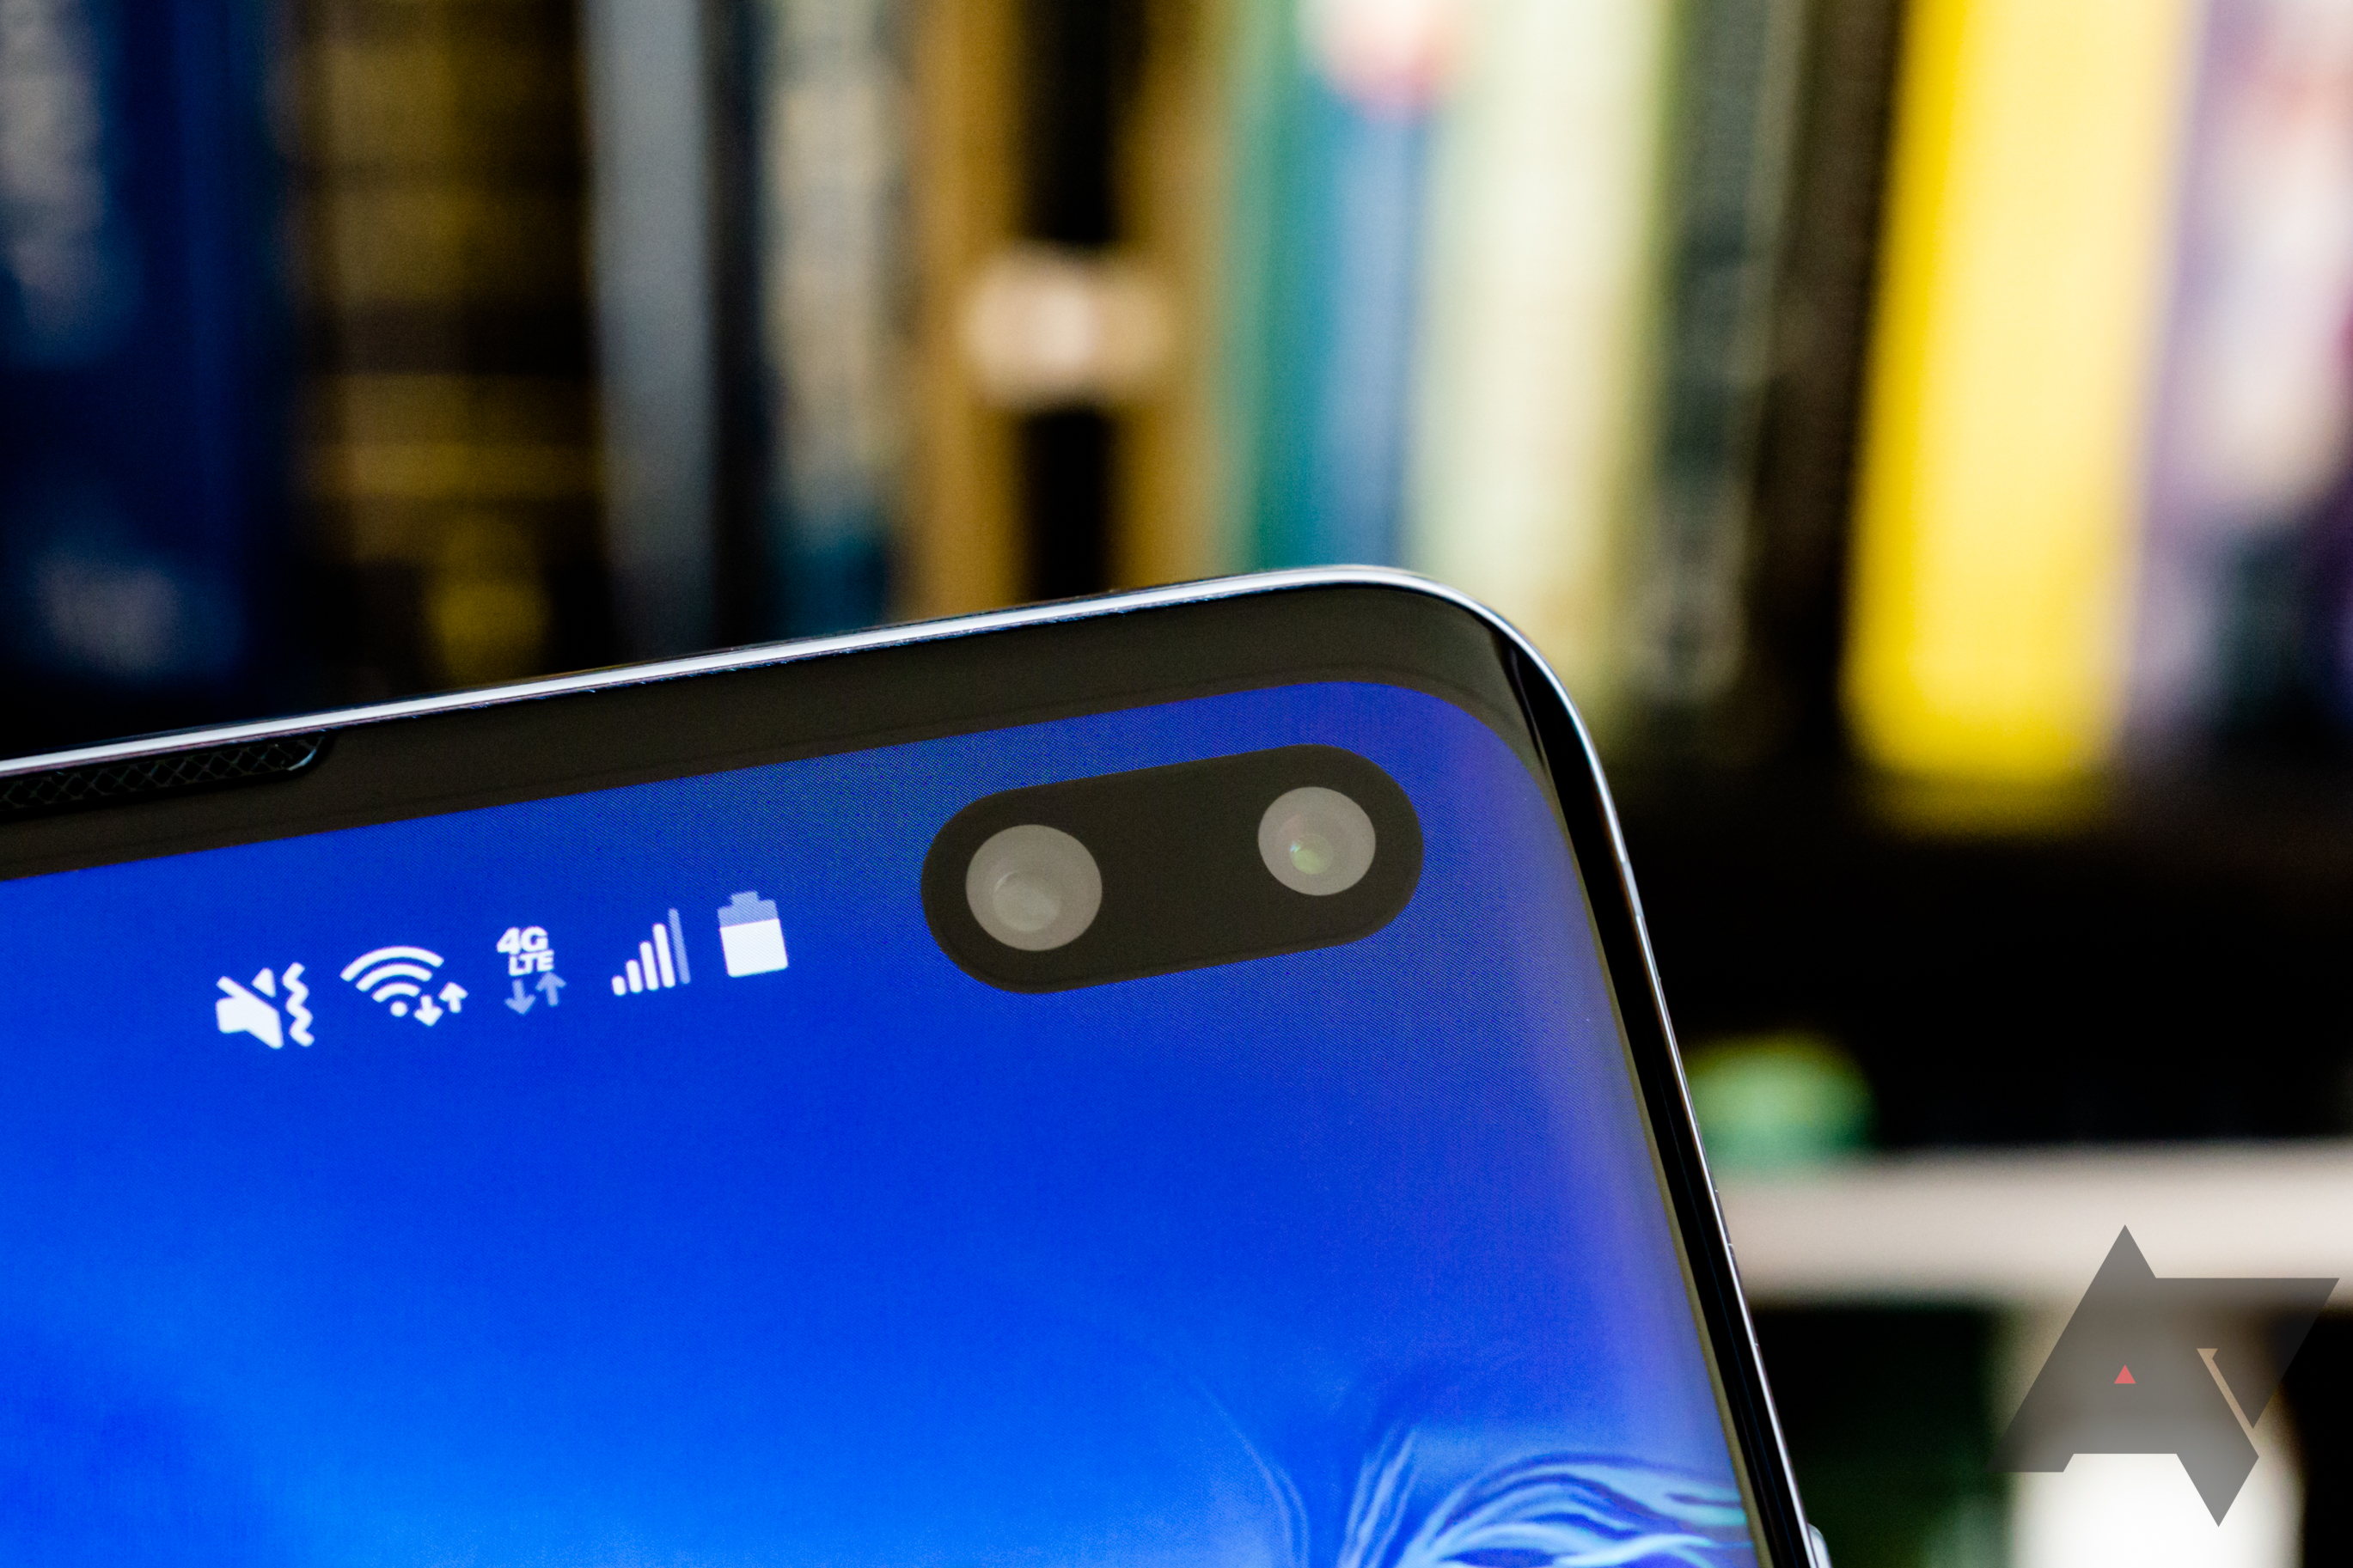 Samsung Galaxy S10 face unlock can be fooled by a photo, video, or even your sister